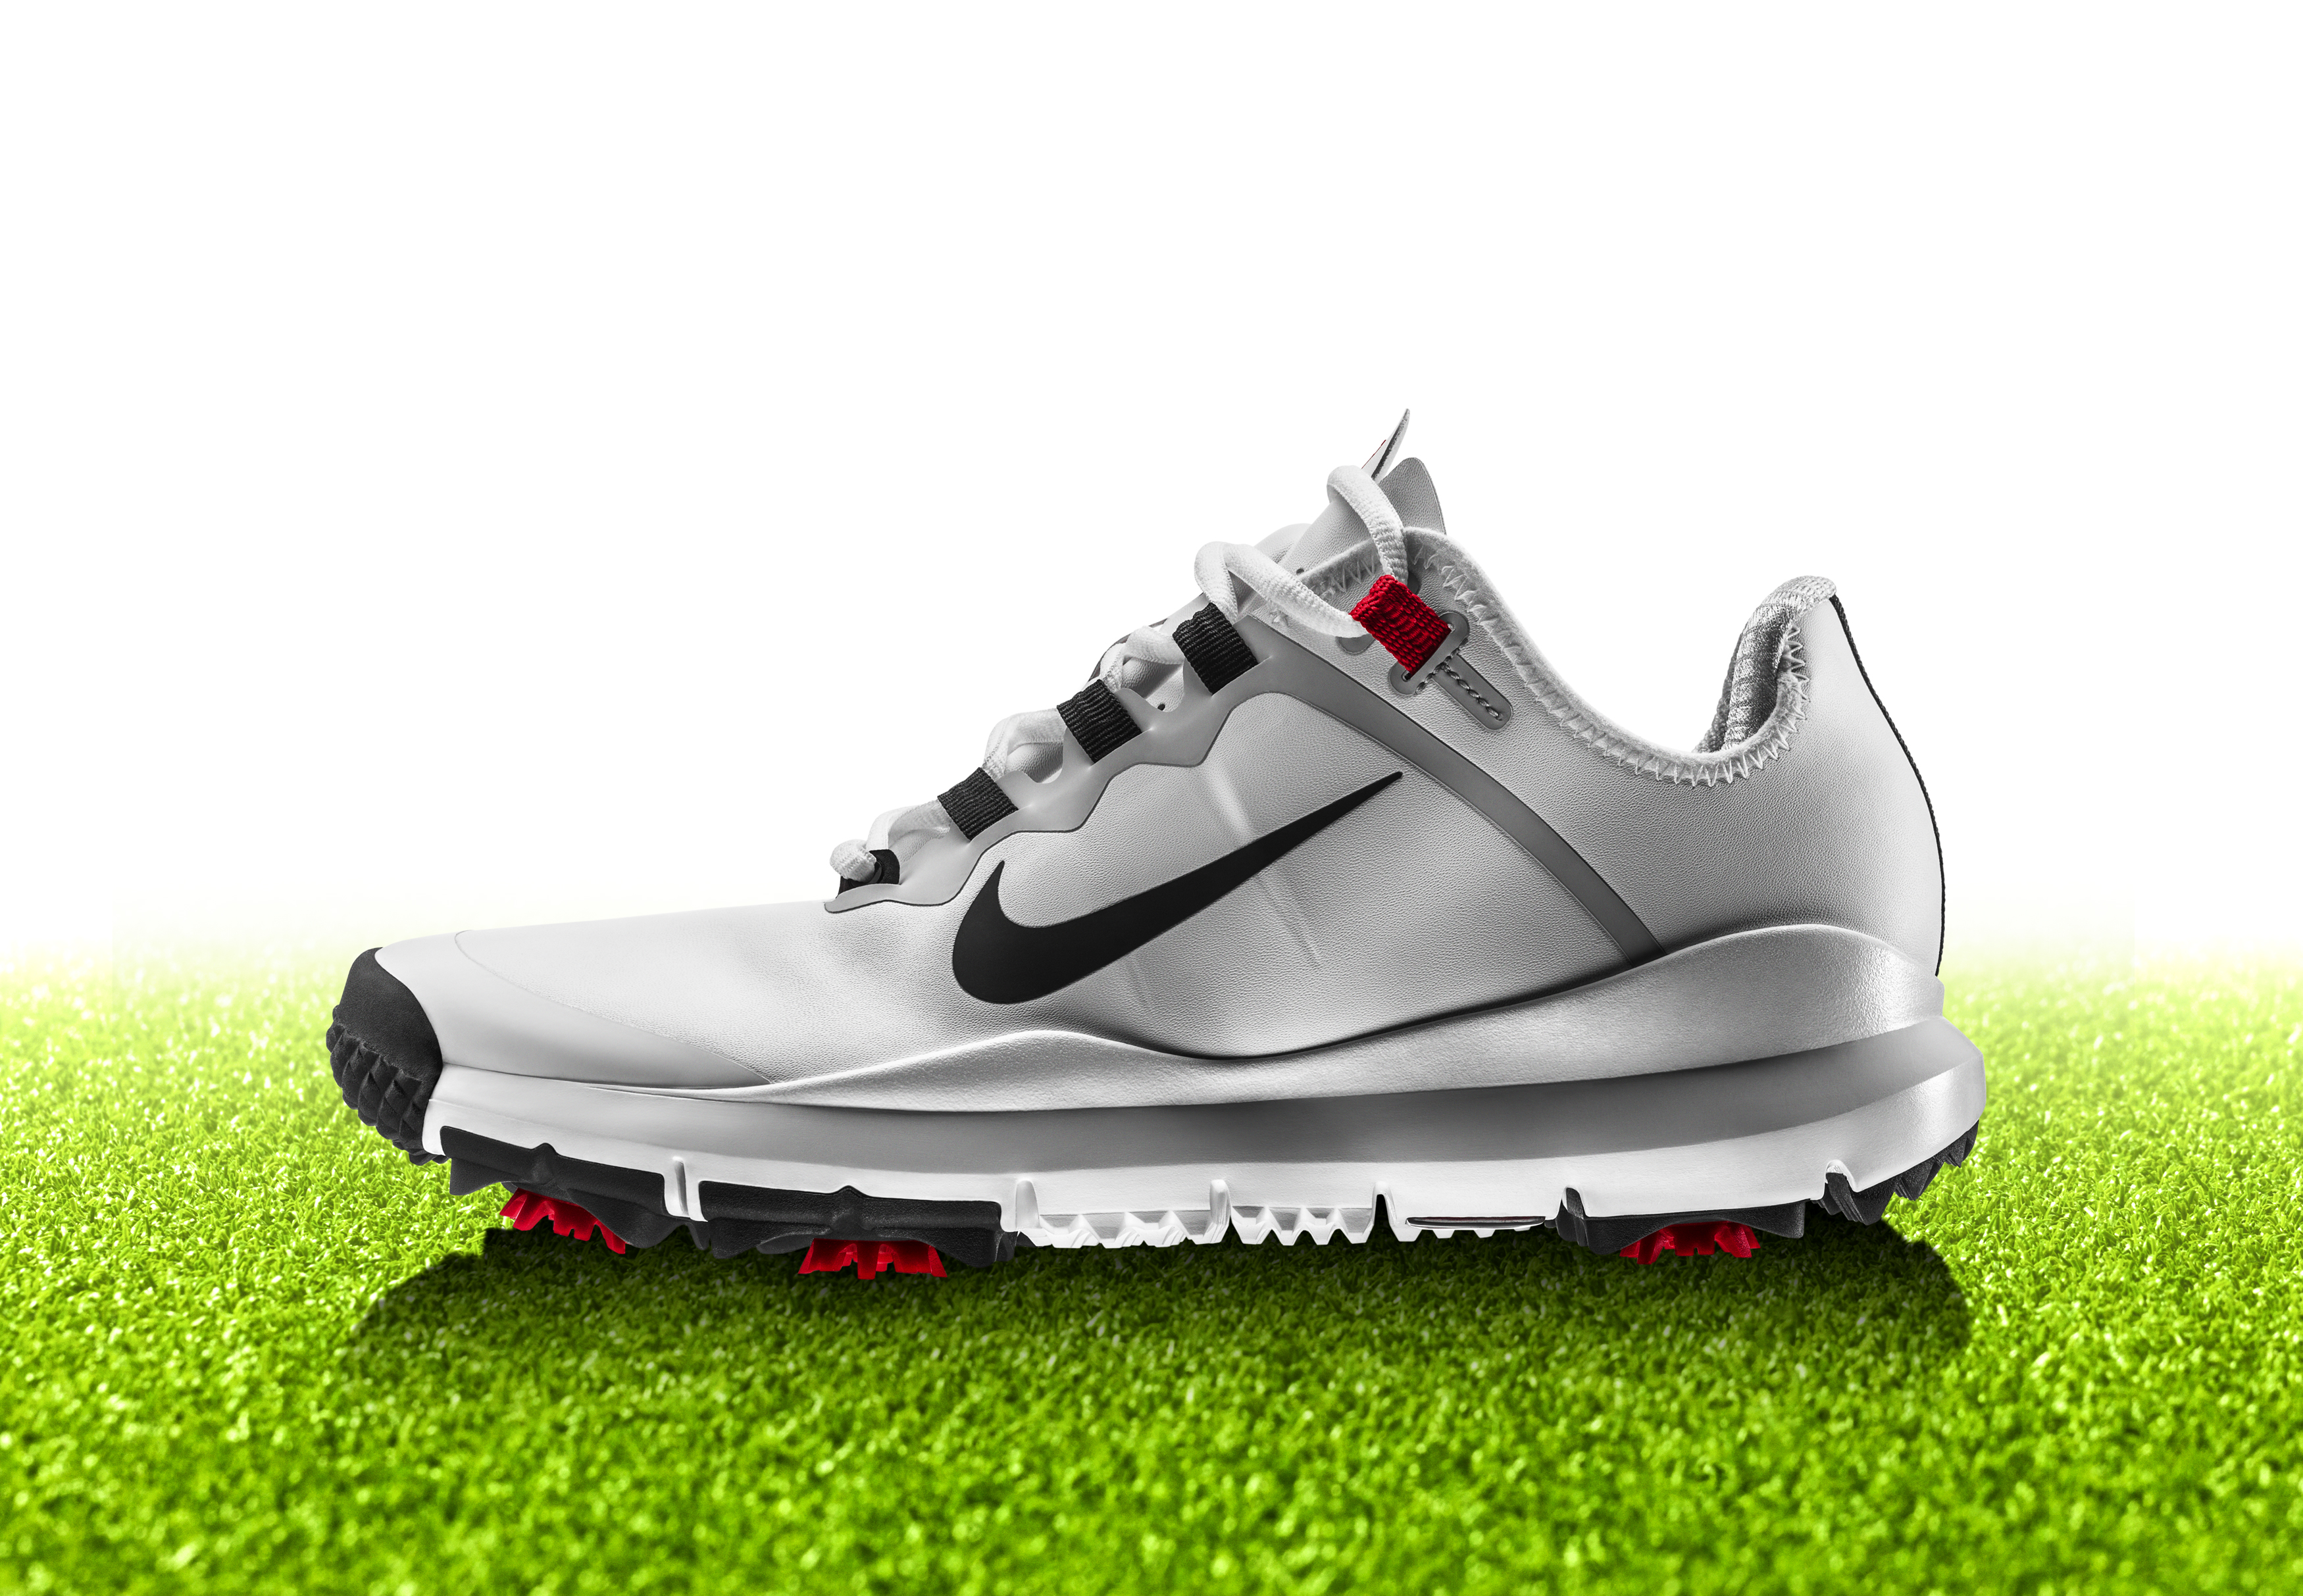 nike free tiger woods prototype golf shoes 874009249